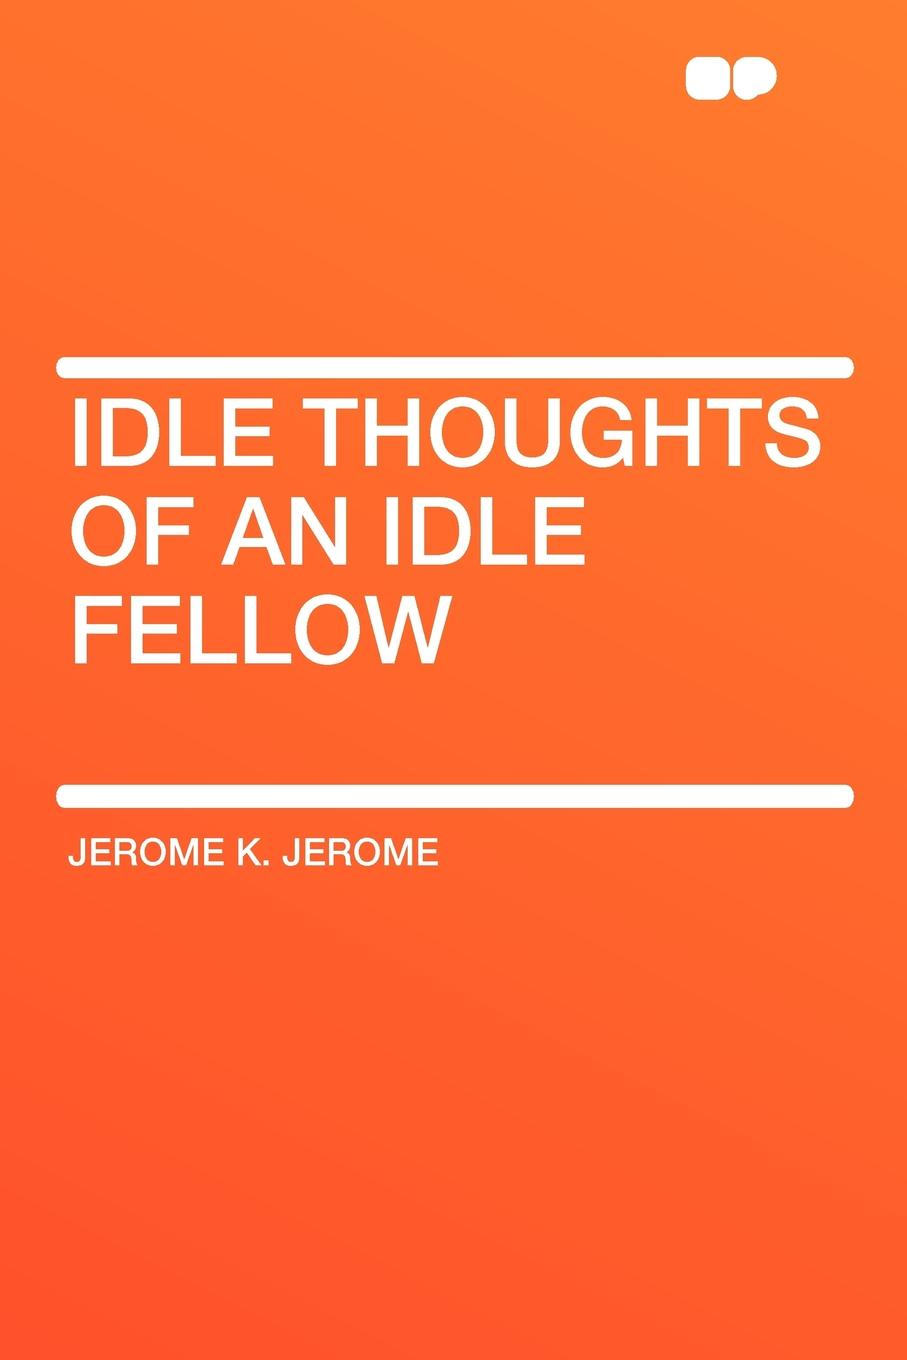 Jerome K. Jerome Idle Thoughts of an Idle Fellow j k jerome idle thoughts of an idle fellow